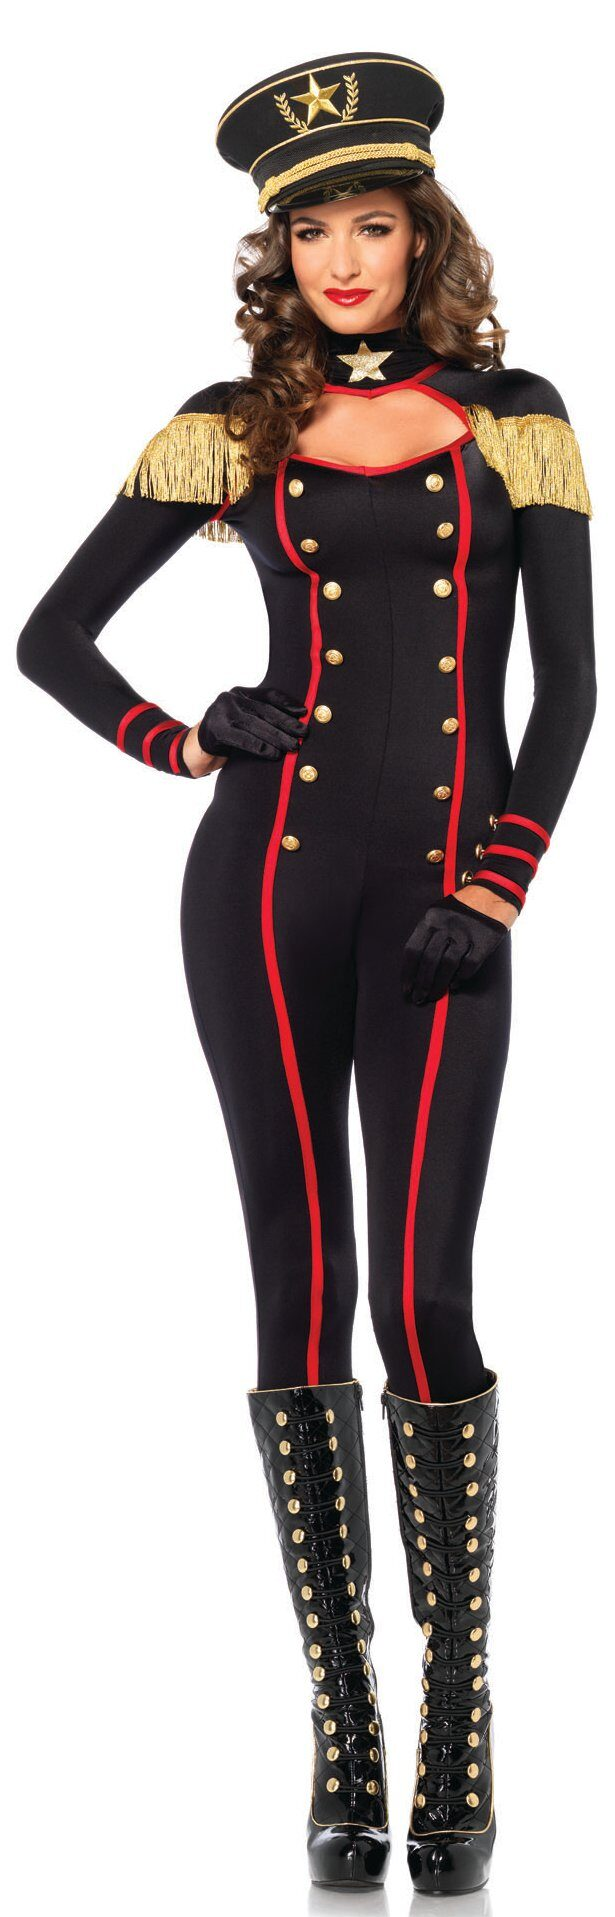 sc 1 st  Mr. Costumes & Sexy Military Catsuit Costume - Mr. Costumes